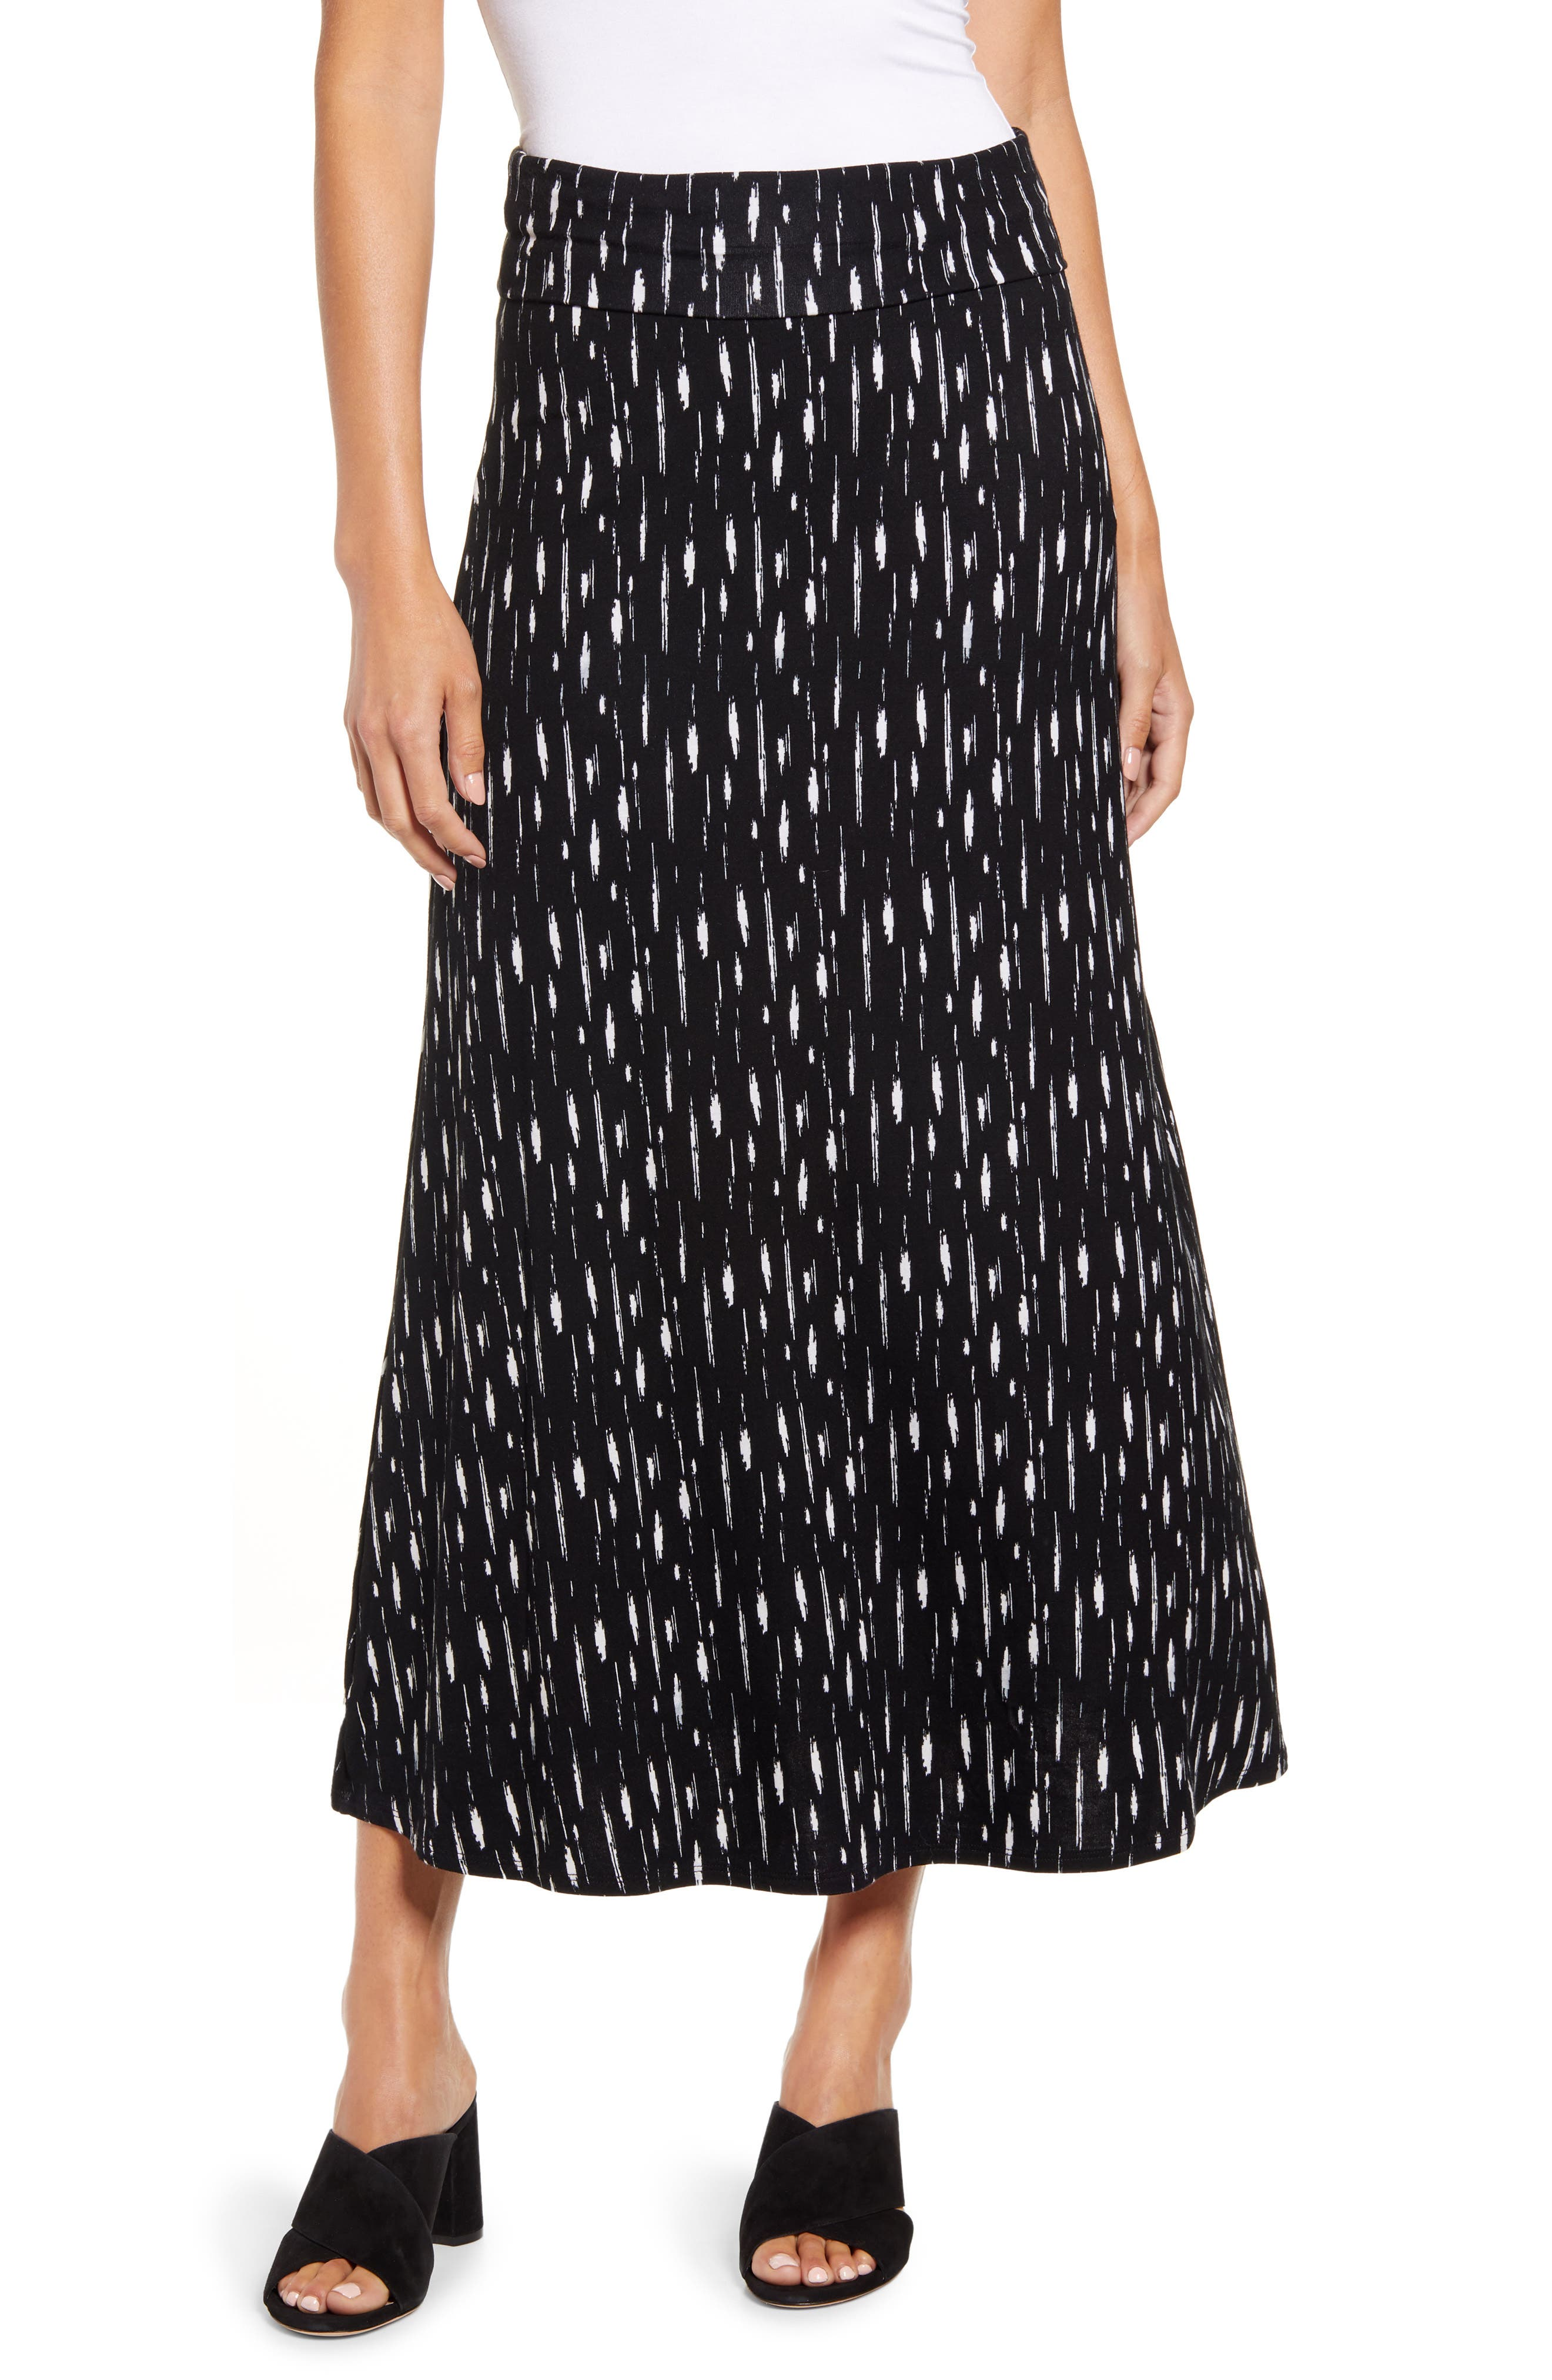 Cut from soft jersey with a streaky print, this comfortable-for-anything skirt has a waistband you can fold over to change the look and the length. Style Name: Loveappella Roll Top Print Maxi Skirt. Style Number: 5921390. Available in stores.